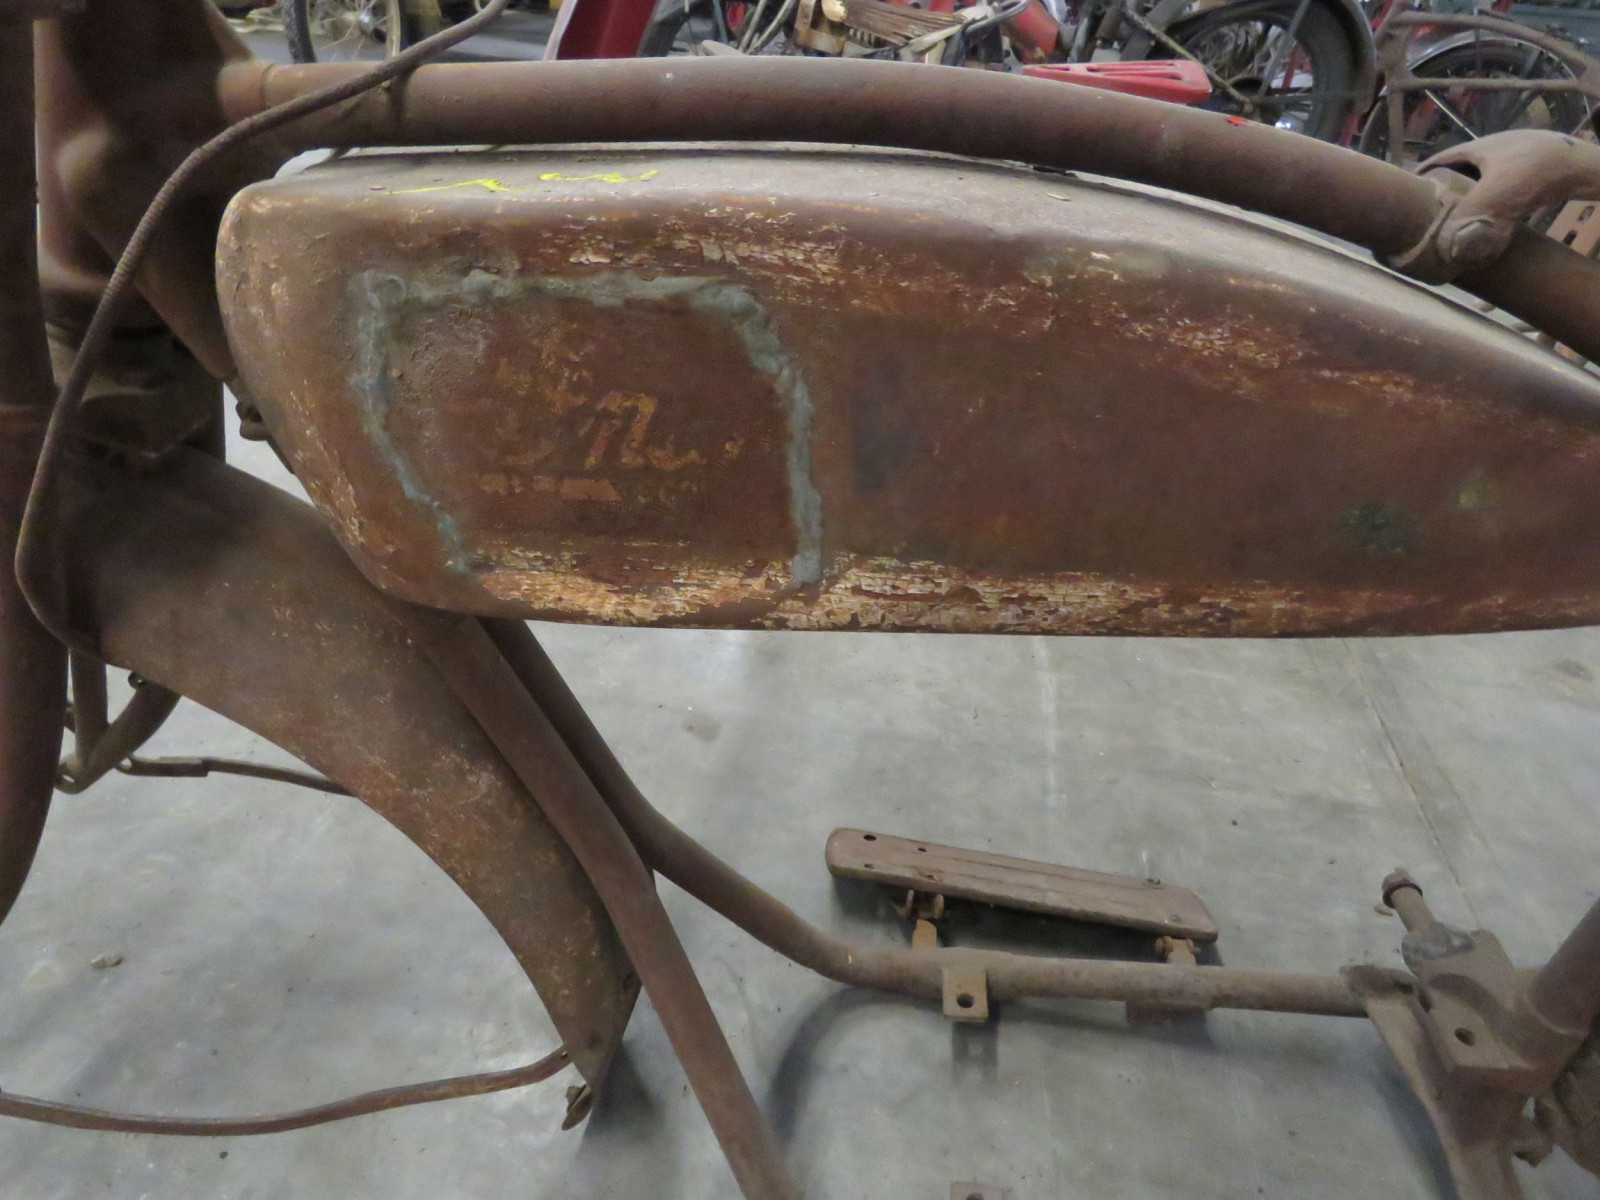 RARE 1920's Indian Motorcycle Project - Image 6